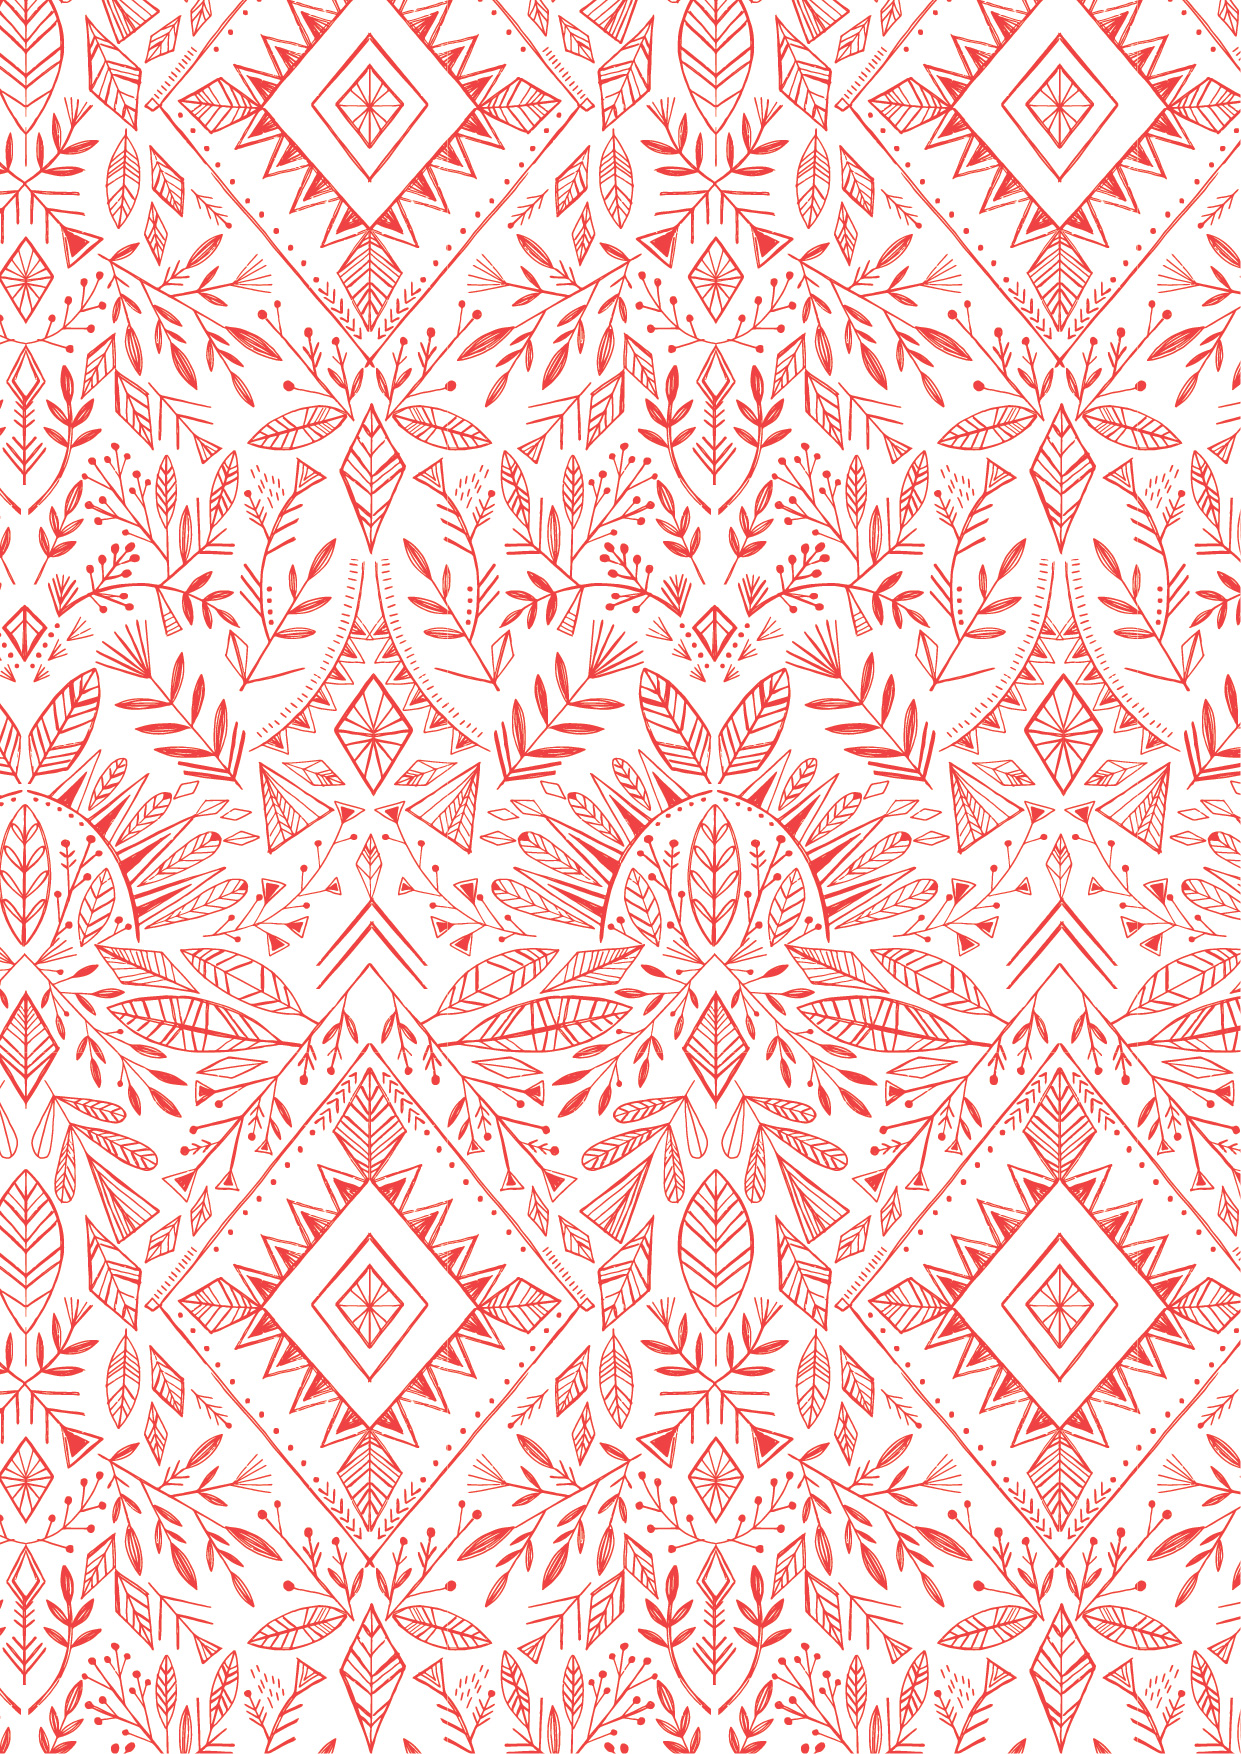 Feathers in Red by Bethan Janine from the Skogen collection for Dashwood Studio #SKOG1536